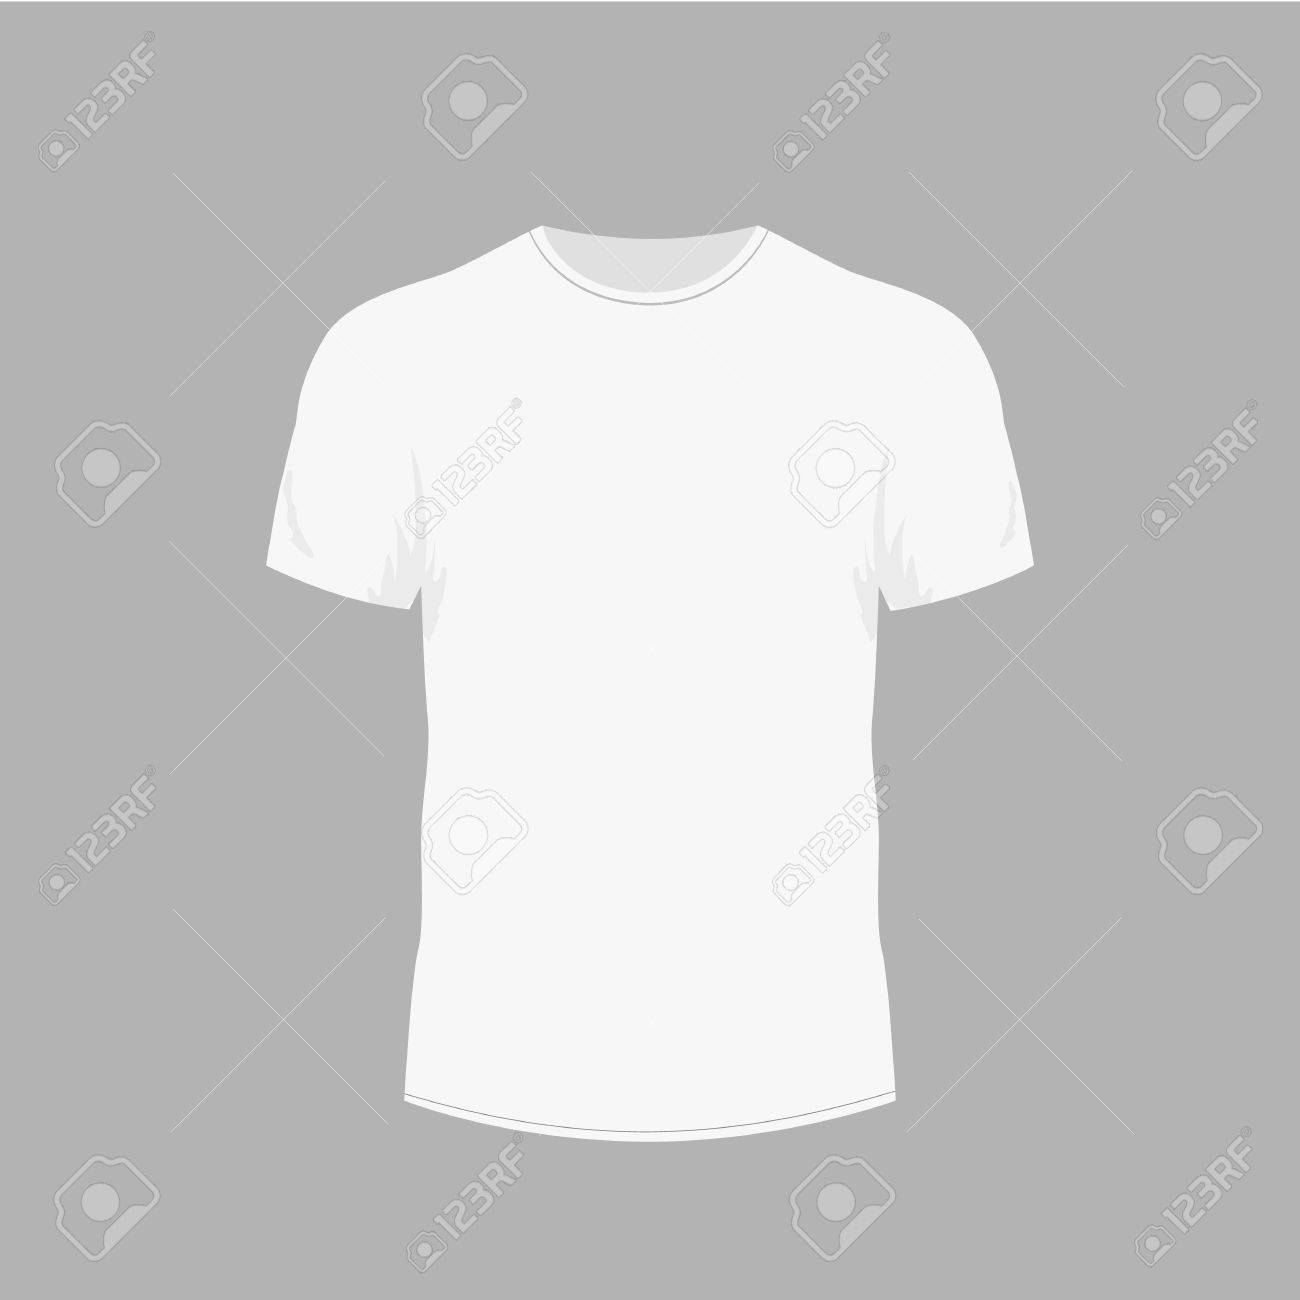 a83128c15 Mens white t-shirt with short sleeve in front views Stock Vector - 80978271